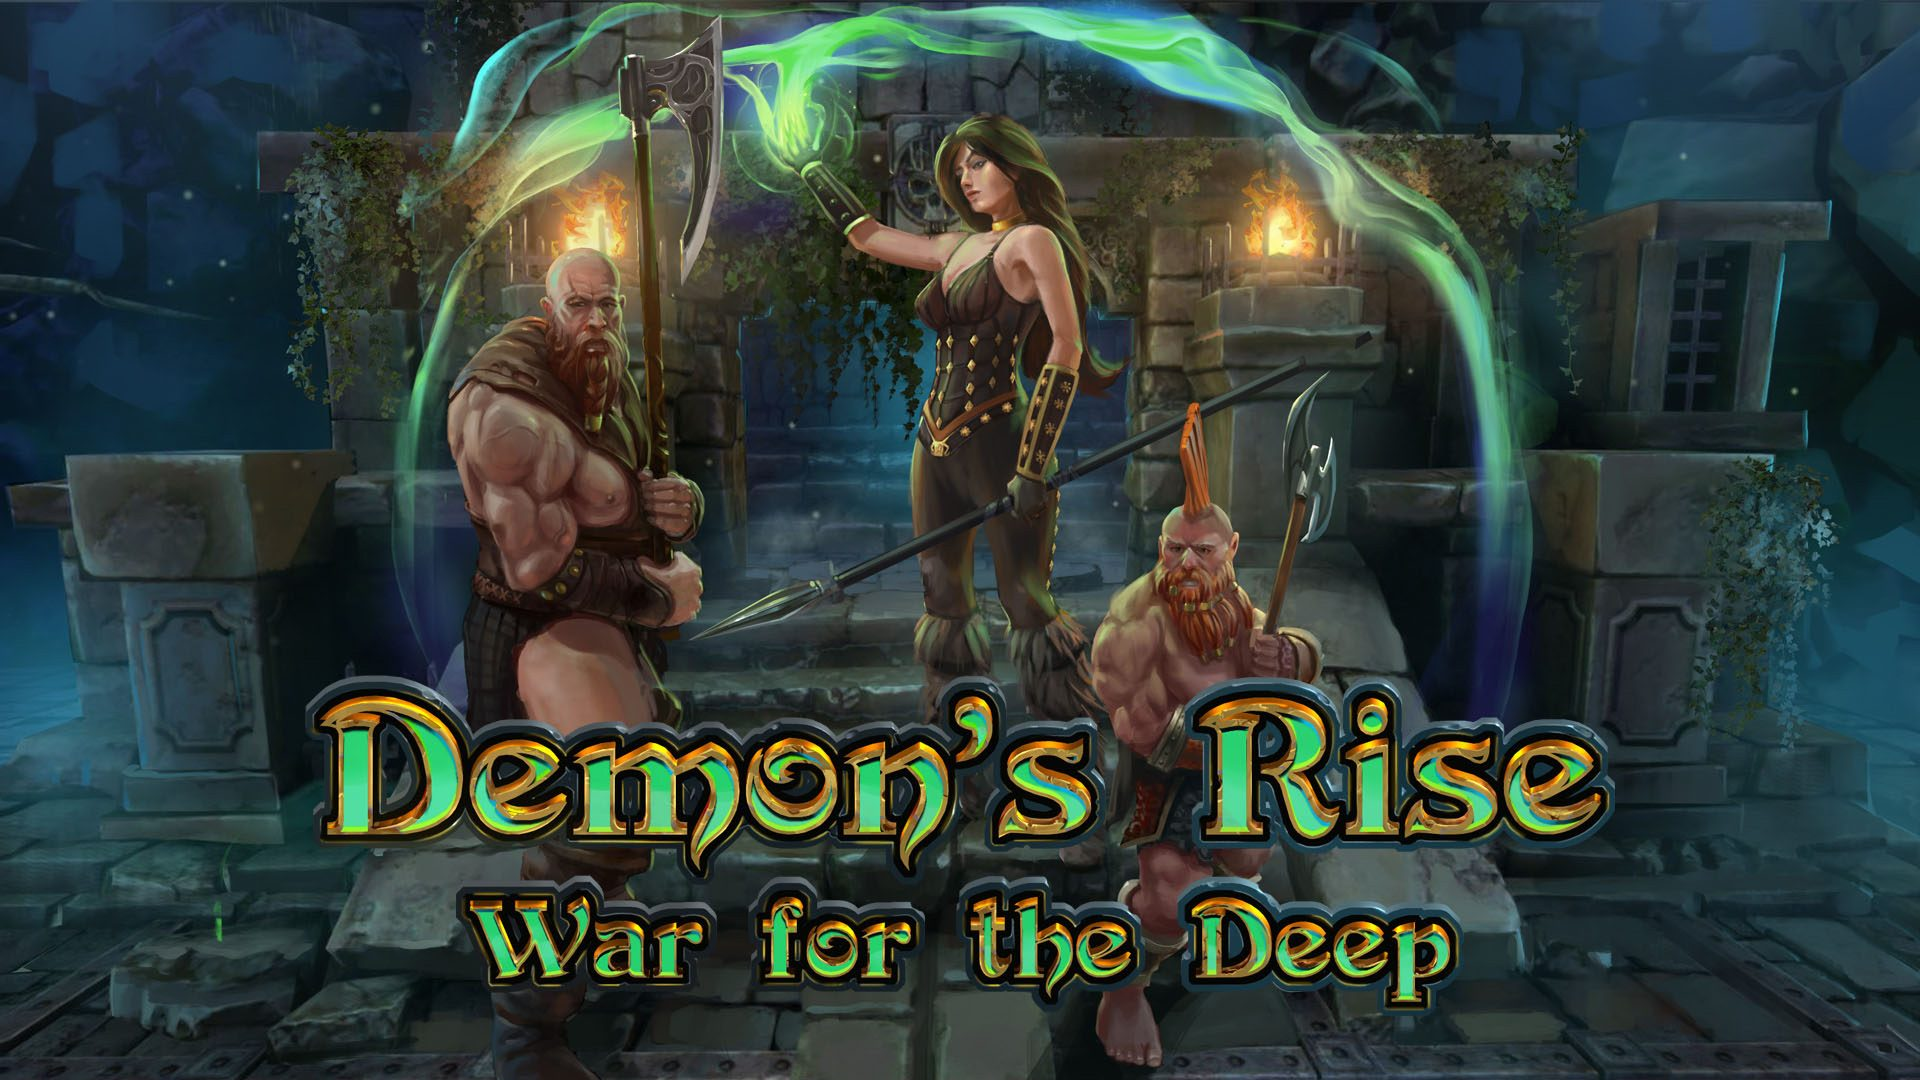 demons-rise-war-for-the-deep-switch-hero-3025070